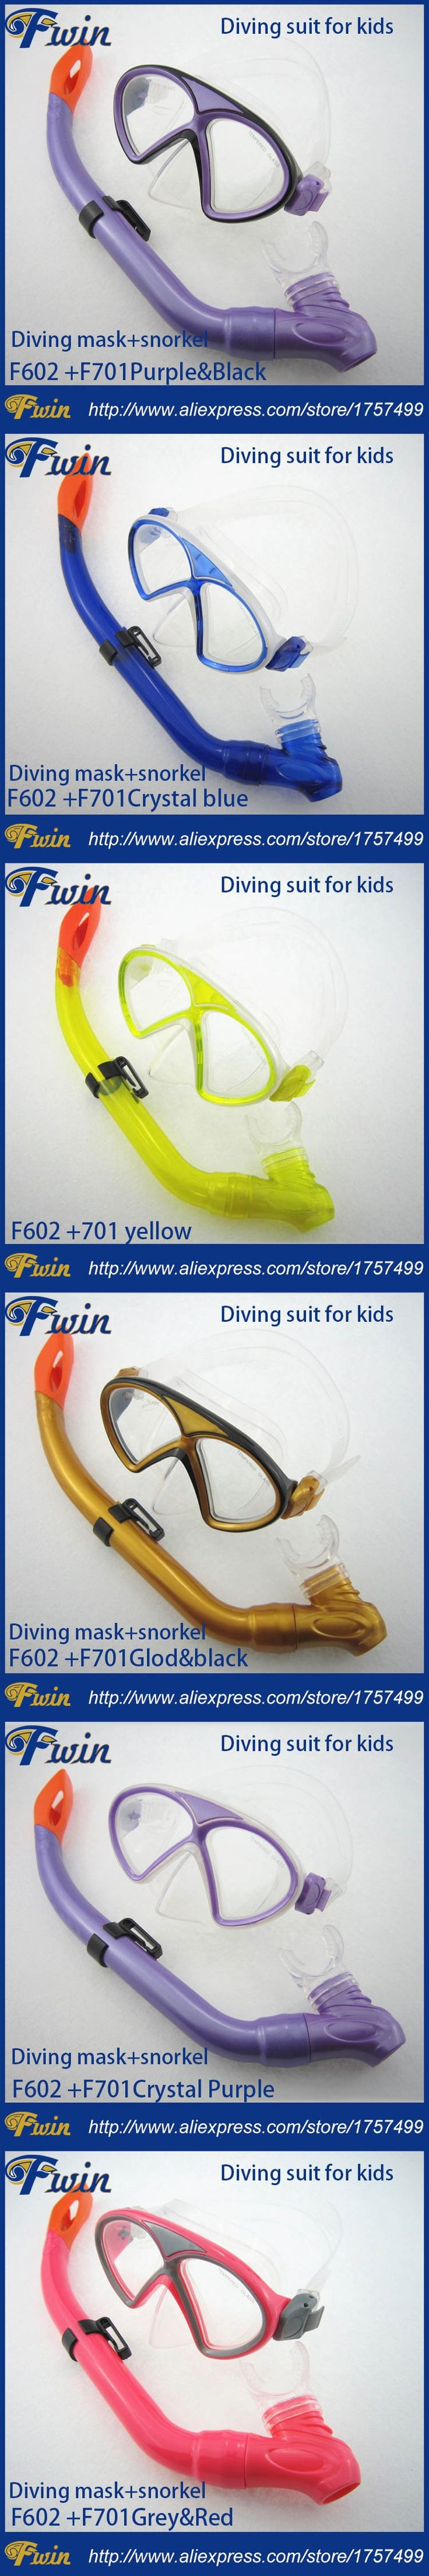 High Quality scuba Diving Goggles and a breathing tube Glass kids Diving Mask And Snorkel Set